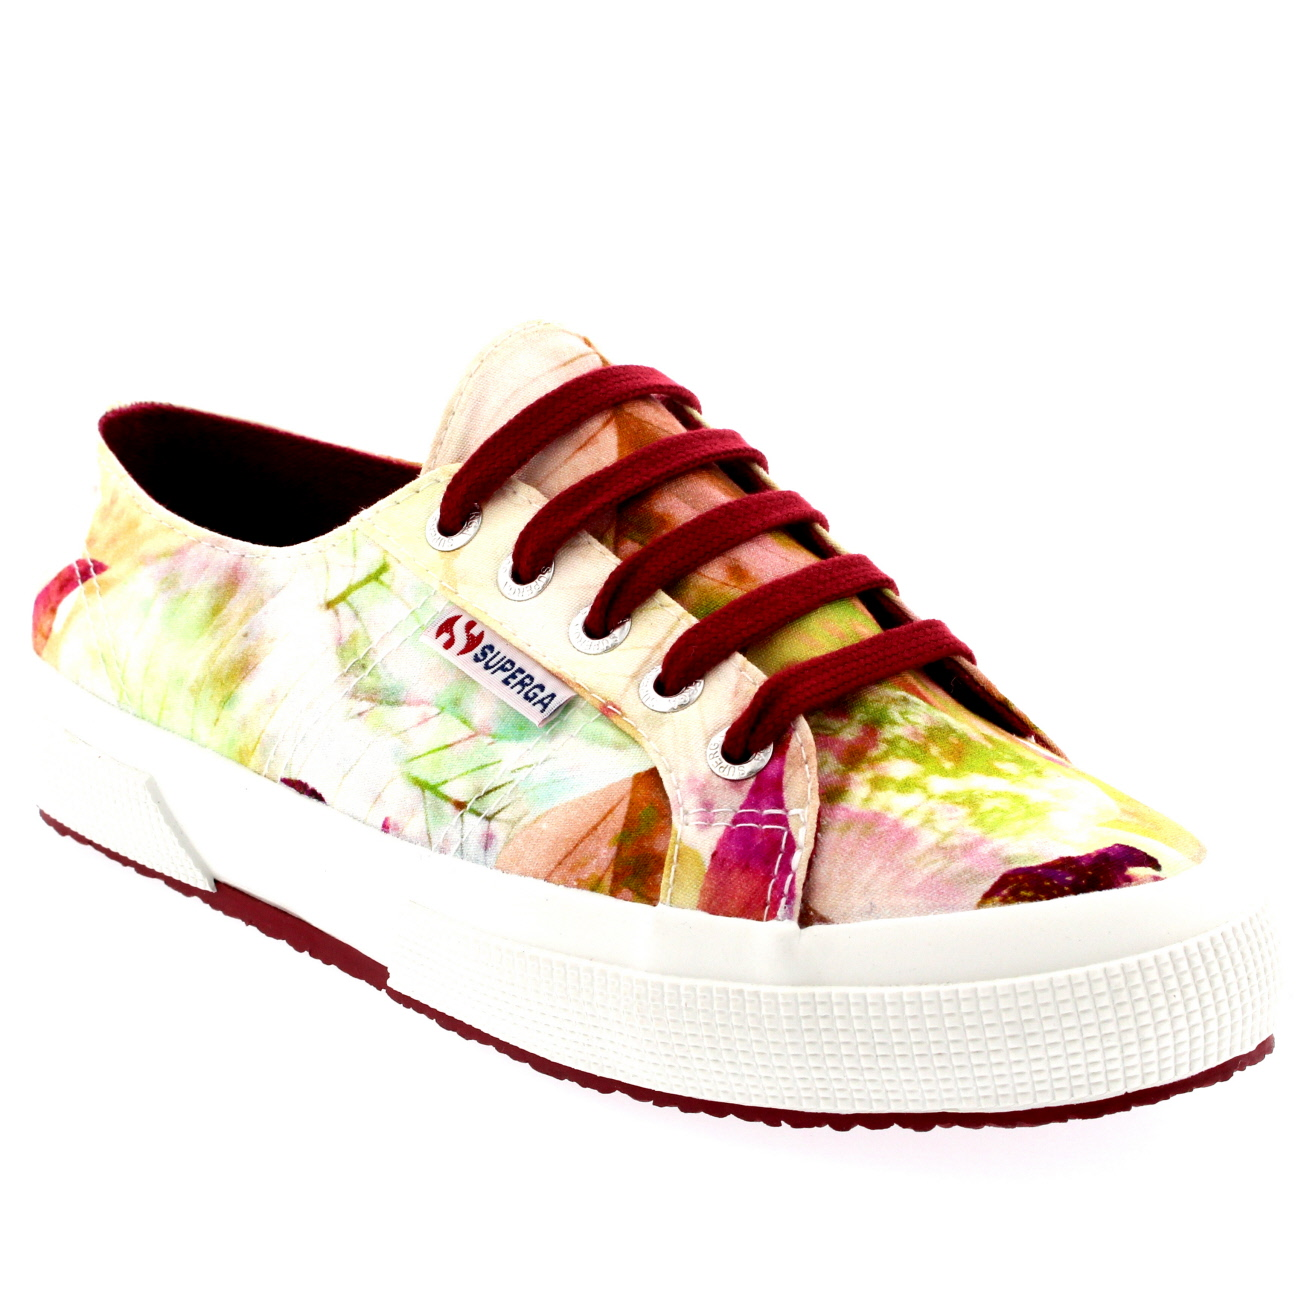 Superga 3750 Fabric Bahamas